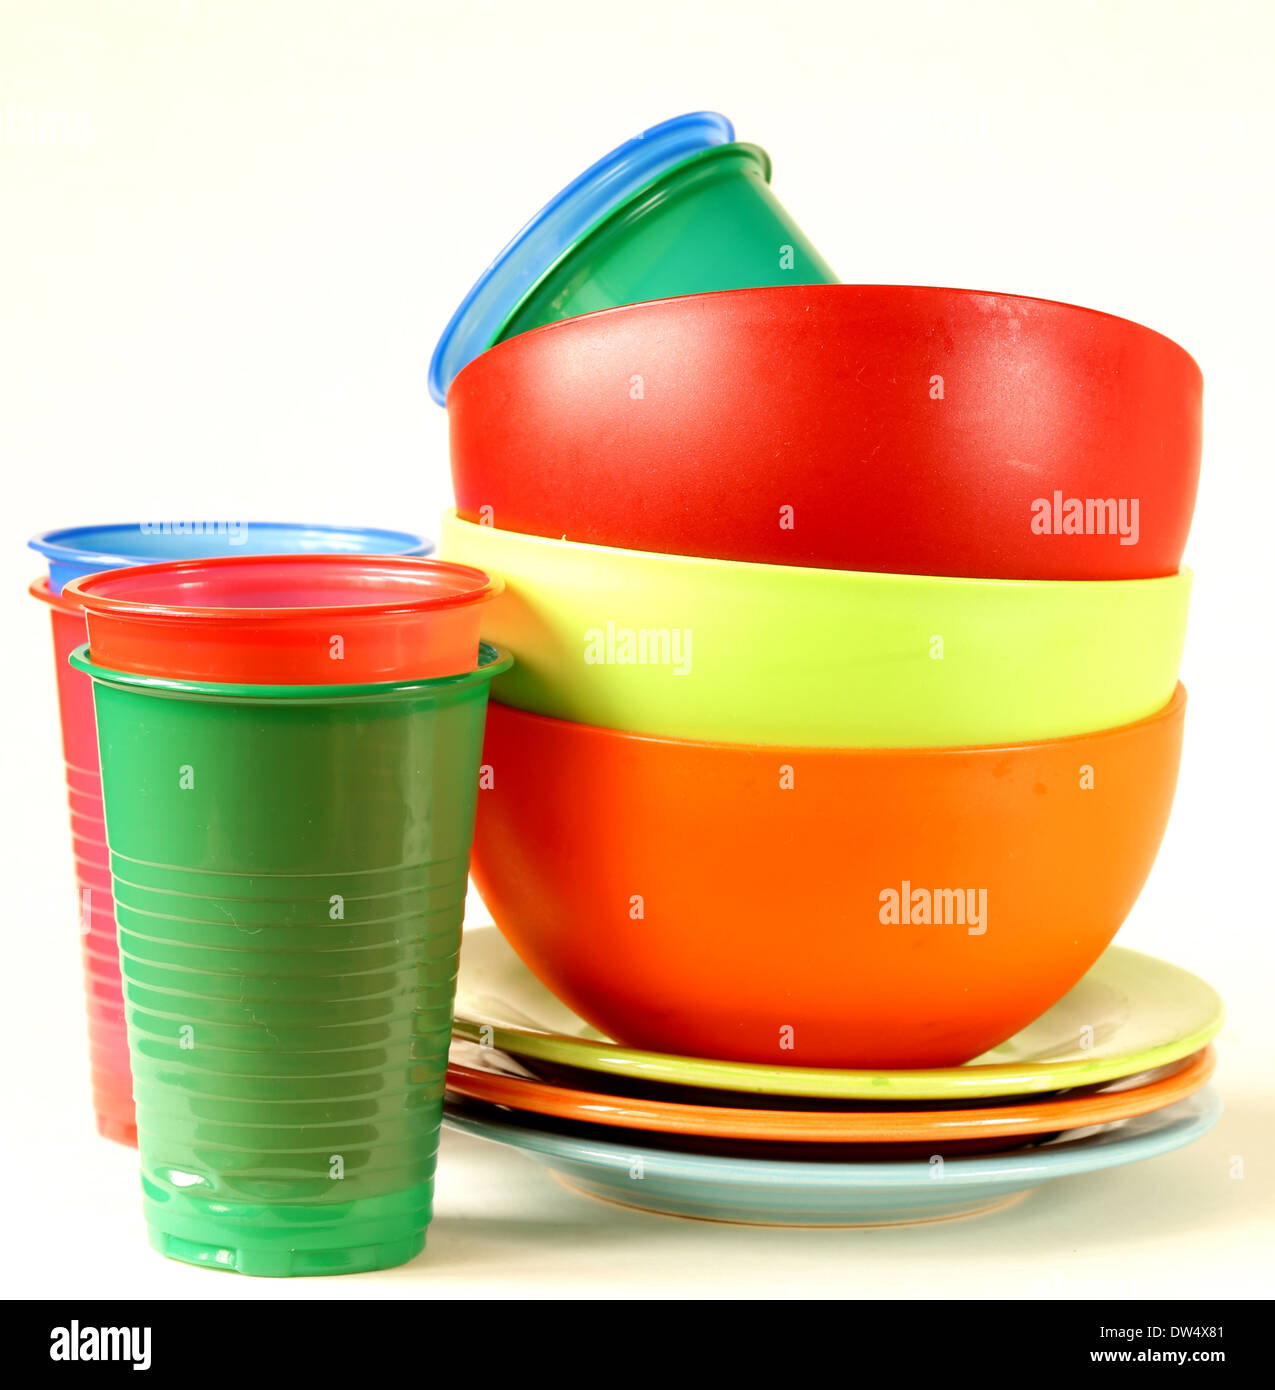 colored plastic tableware (cups bowls plates) - Stock Image  sc 1 st  Alamy & Colourful Plastic Plates Cups Bowls Stock Photos u0026 Colourful Plastic ...